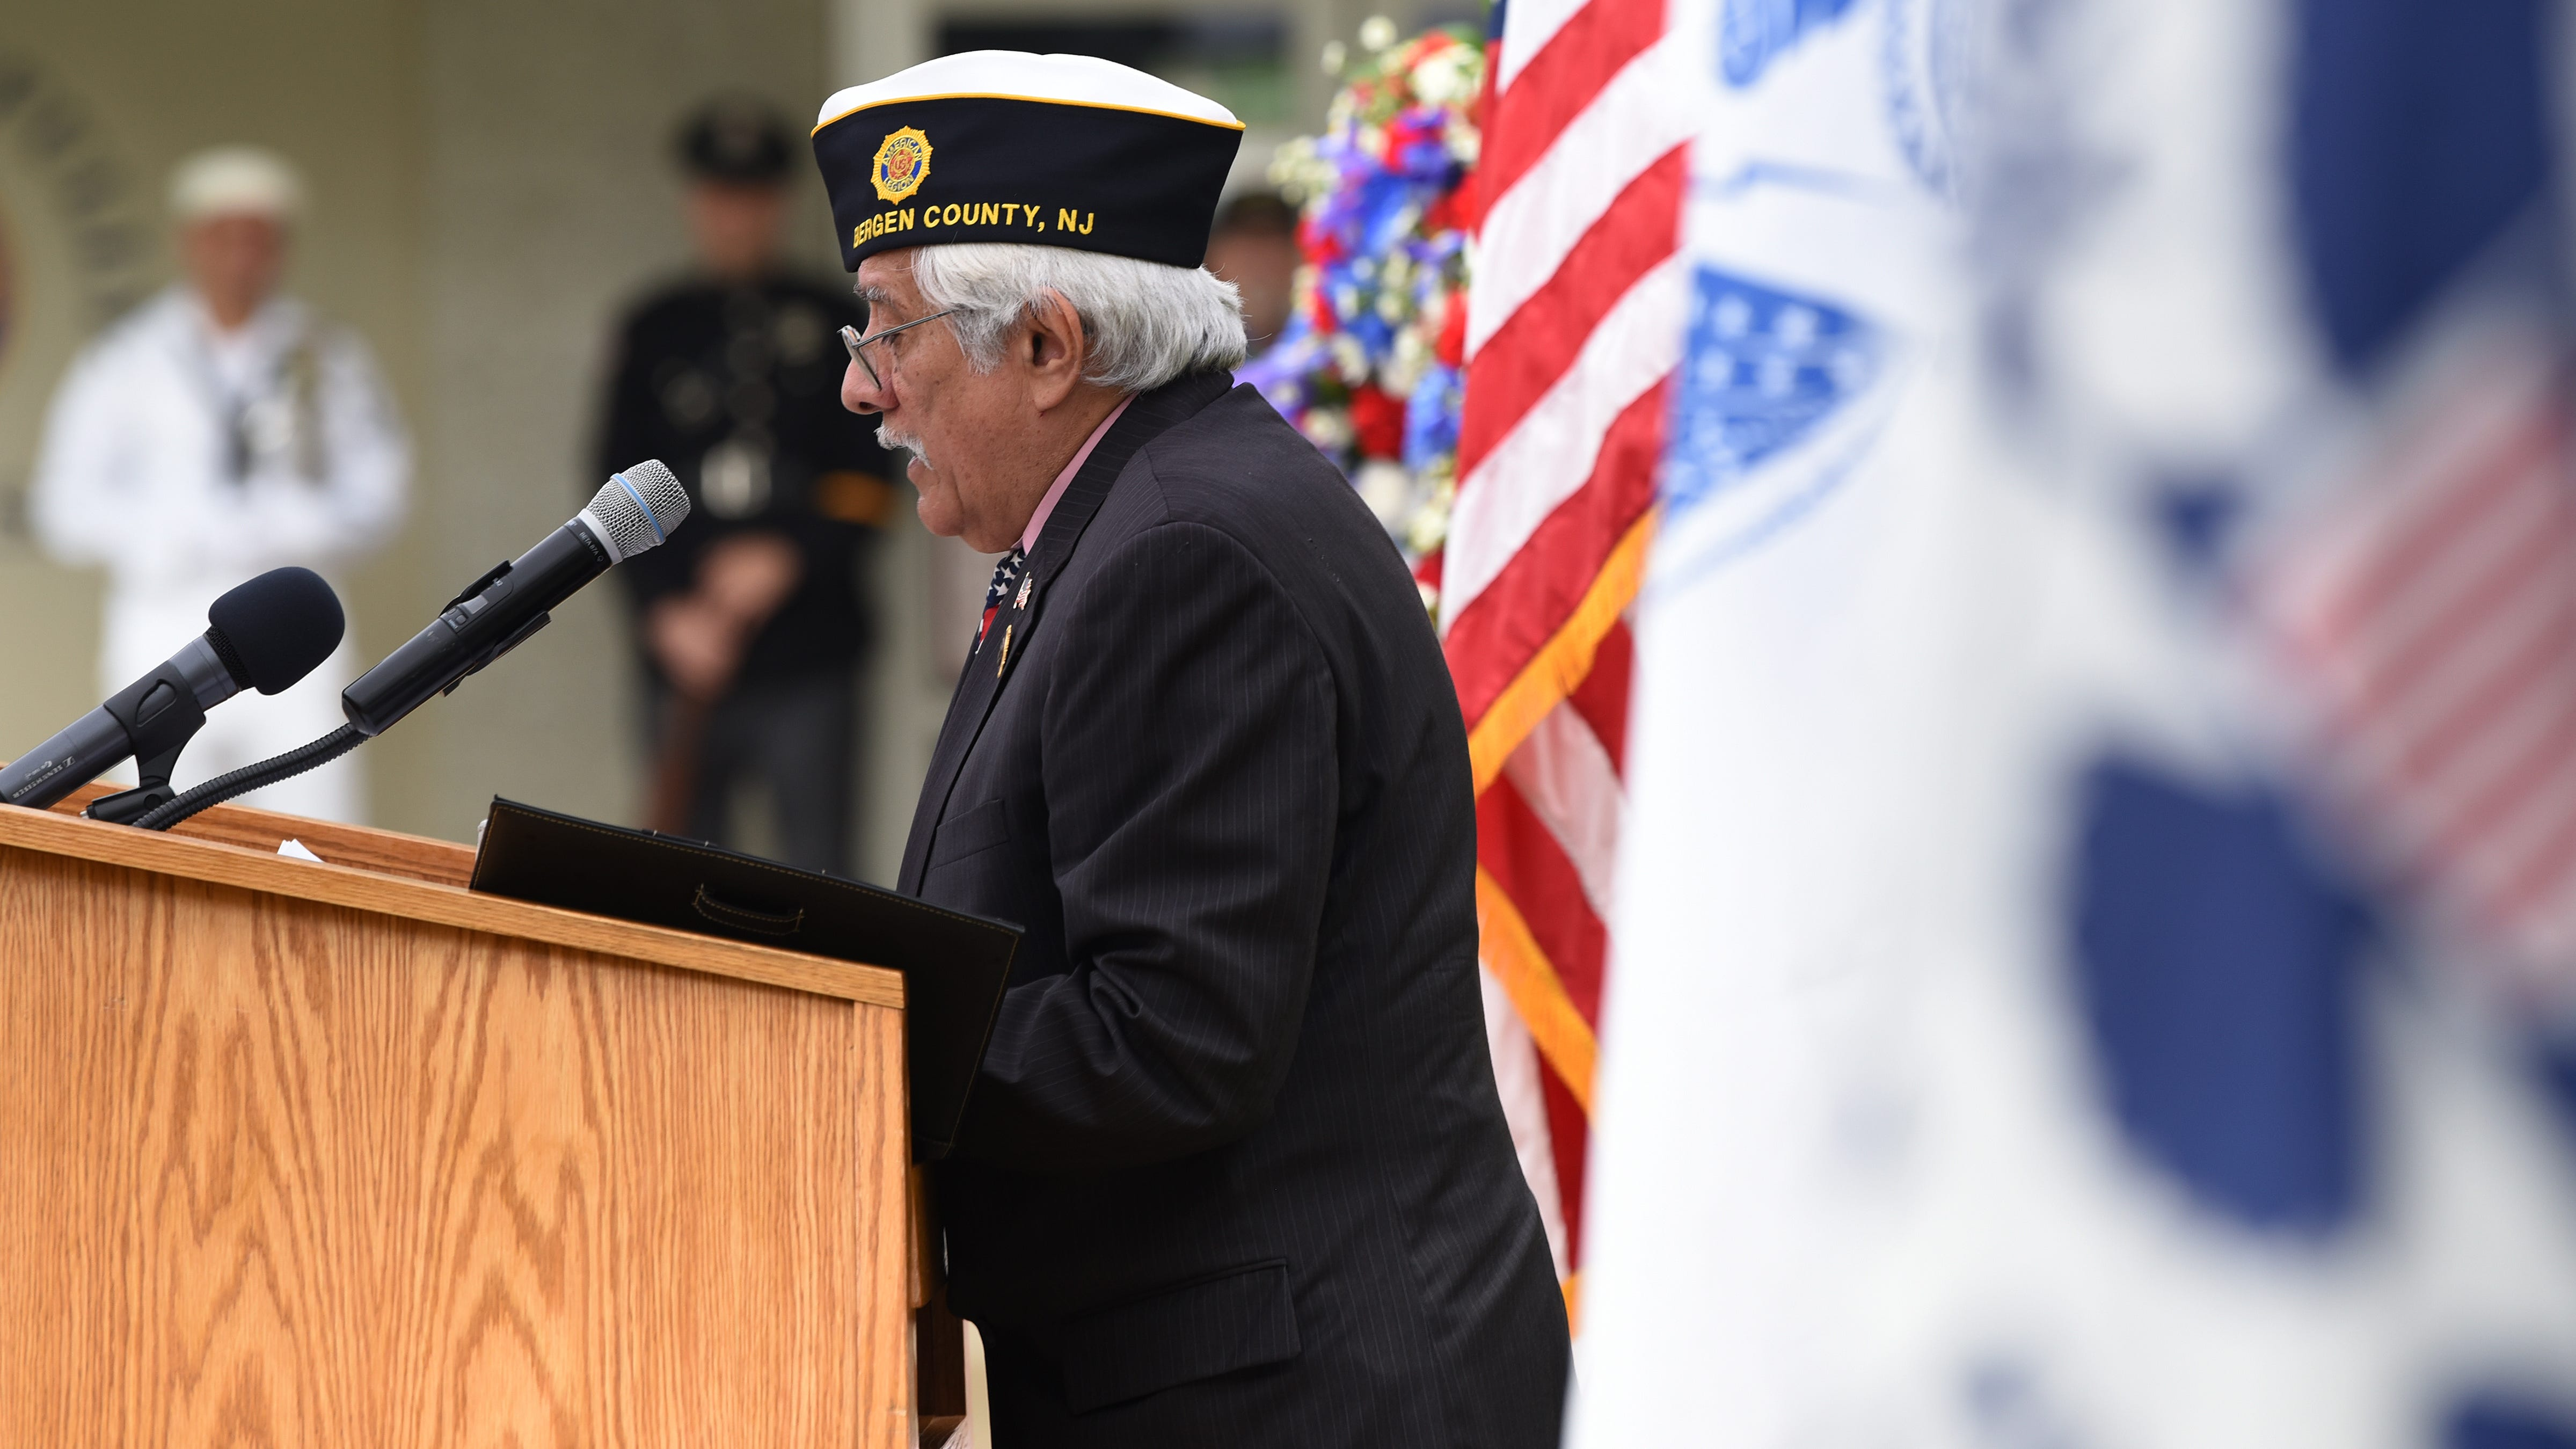 Bergen County honors military vets, active duty personnel